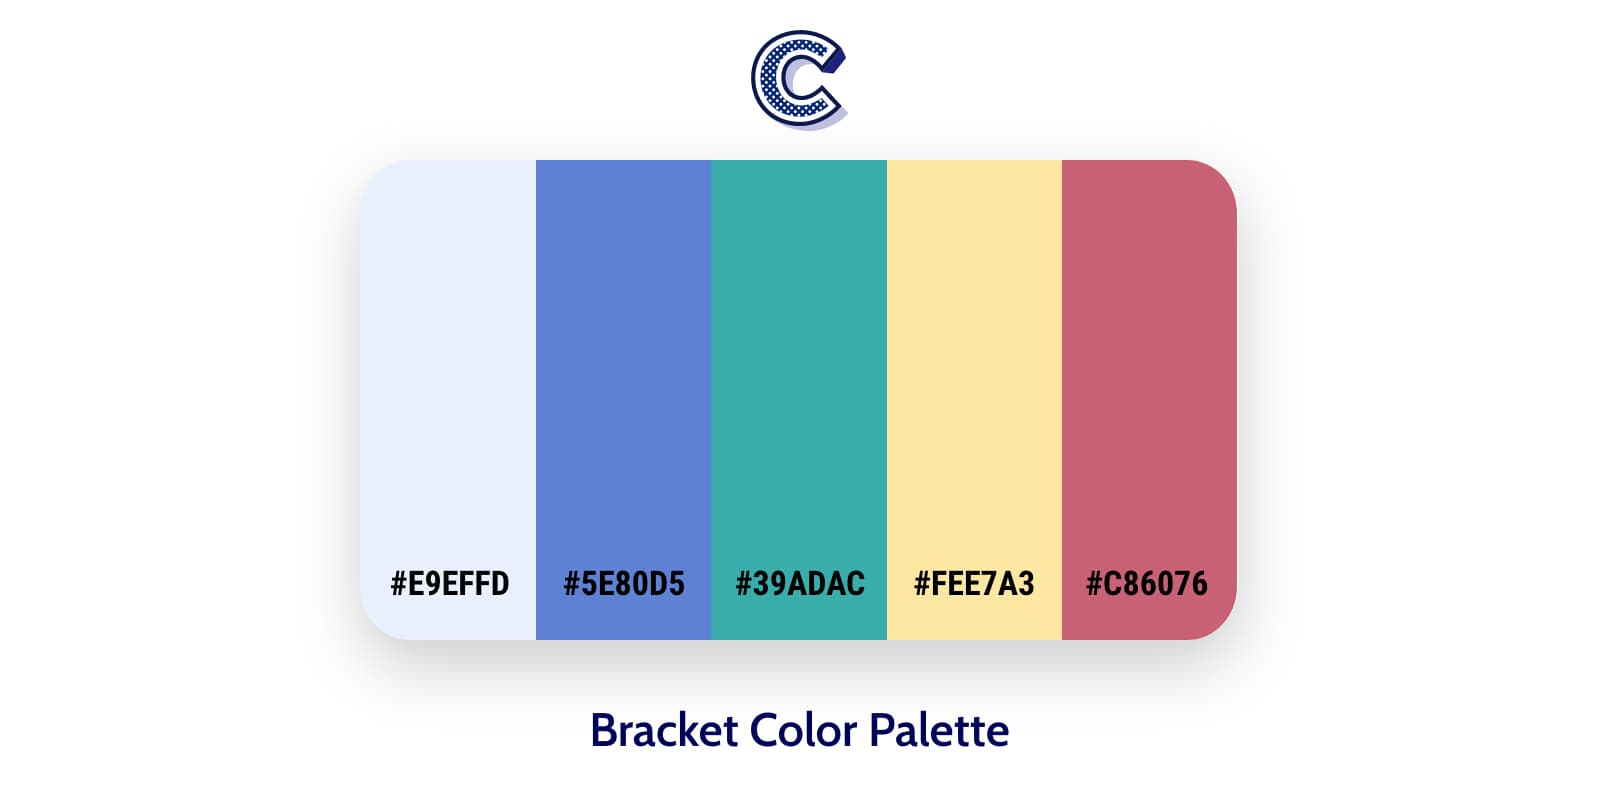 the featured image of bracket color palette